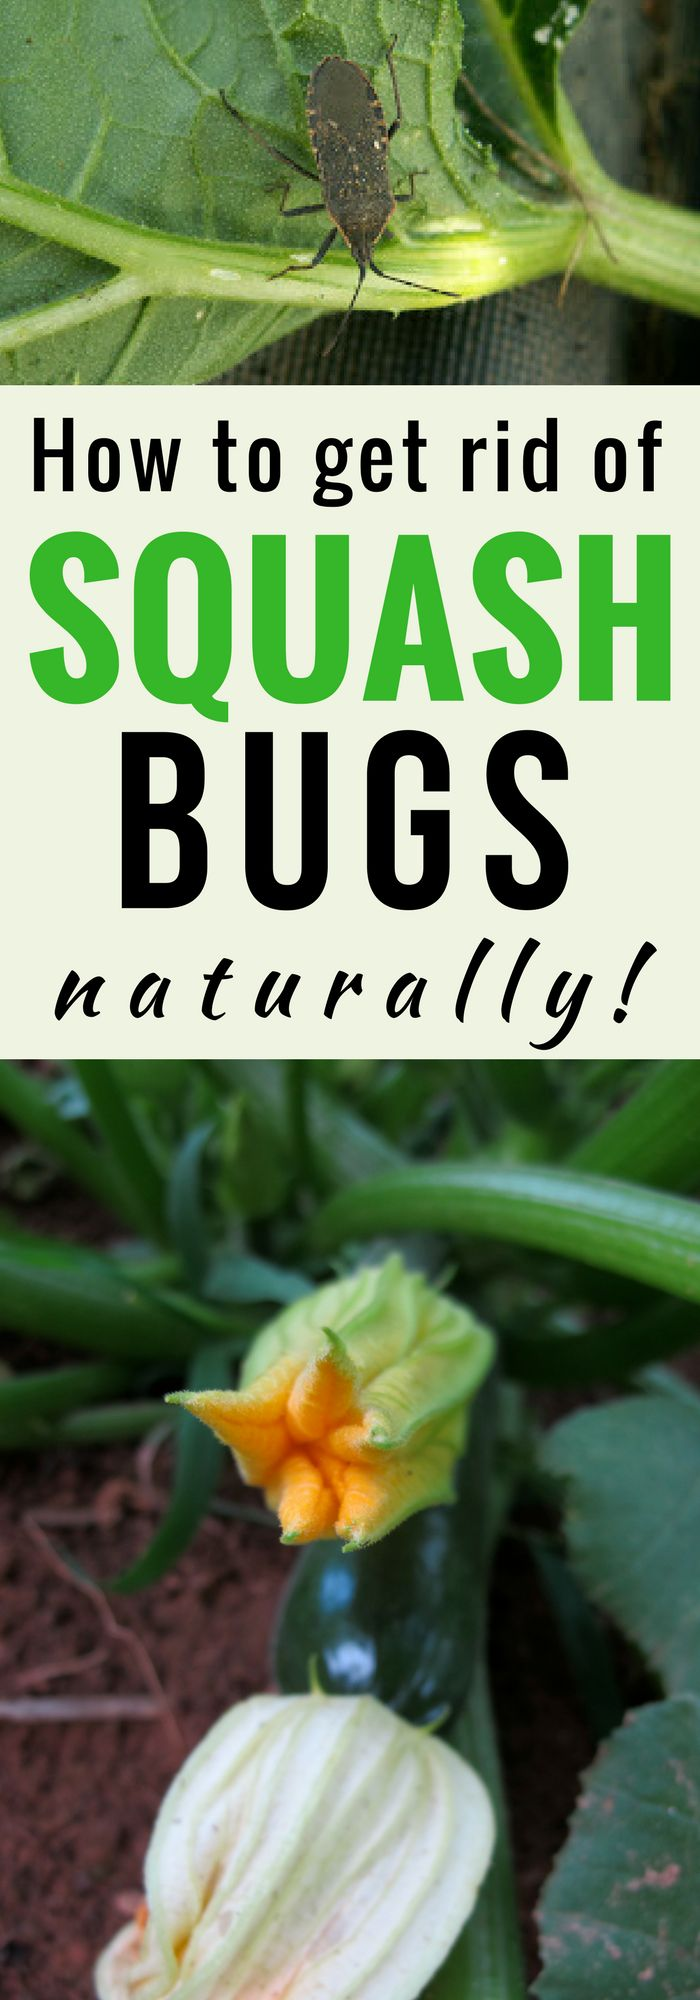 Squash bugs can be devastating to the home garden. Learn how to get rid of squash bugs naturally with 6 easy tips and take back your garden!